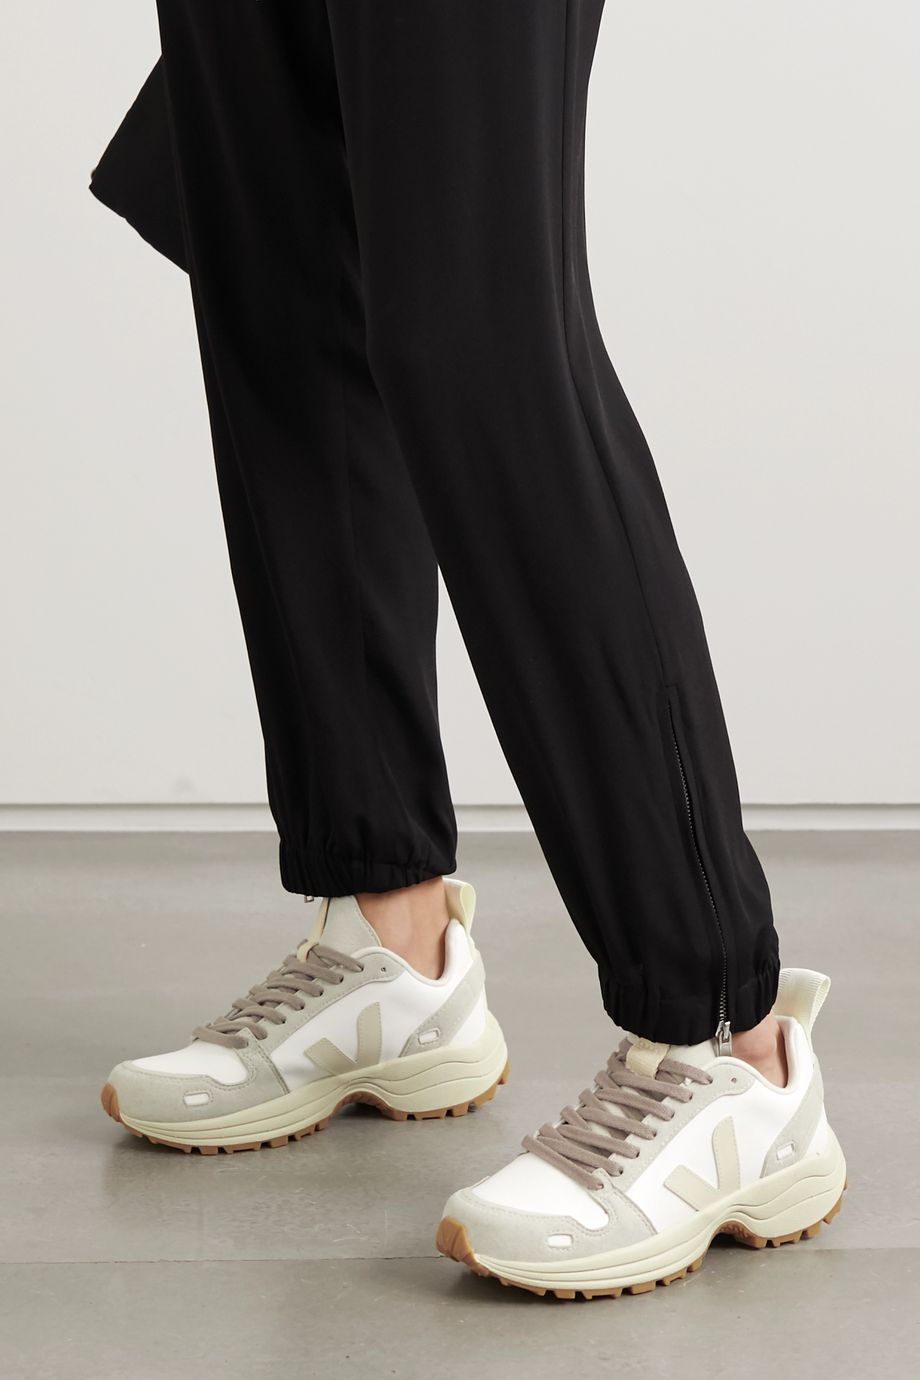 Rick Owens + Veja vegan leather and suede sneakers